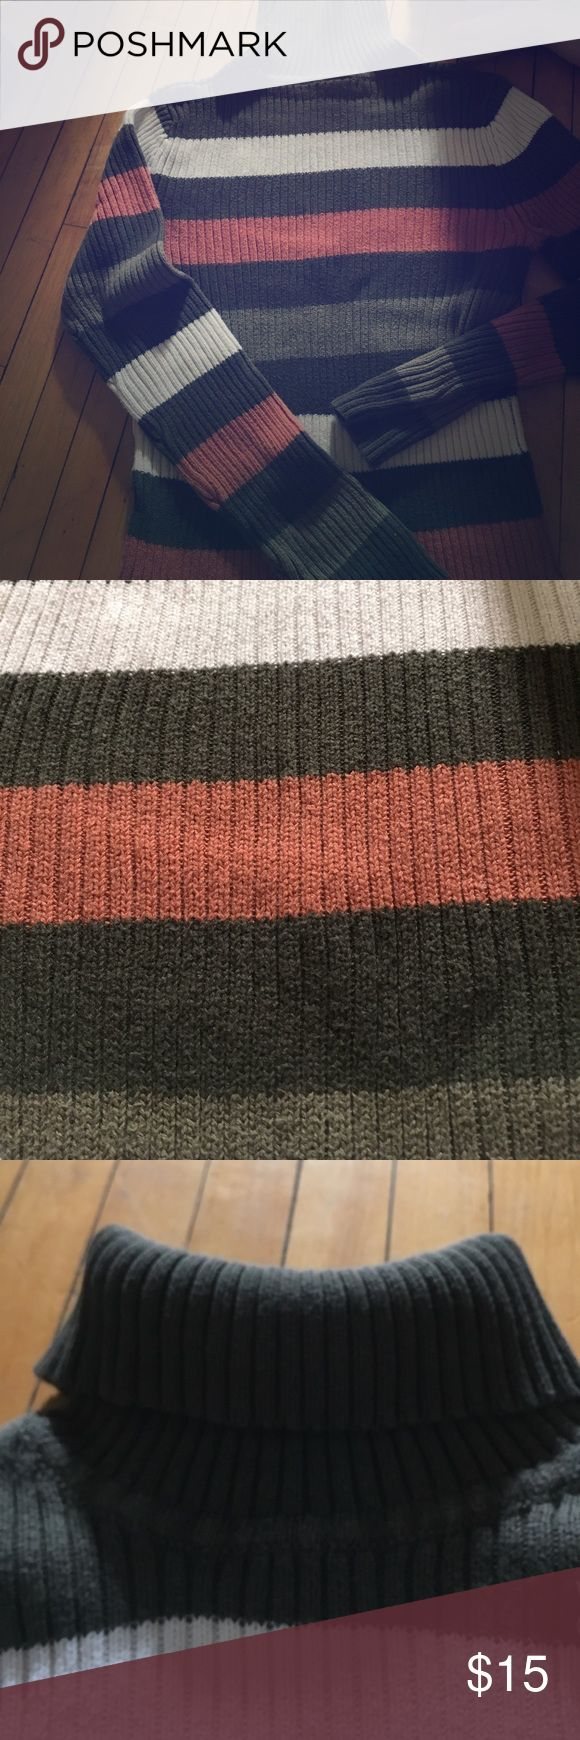 Sonoma Brand women's turtleneck sweater Women's turtleneck sweater multi colored. Coral pink, salmon color. White dark green and gray greenish colors. Size medium. Gorgeous thick or heavy sweater material. Made in Hong Kong 🇭🇰 gorgeous and authentically warm. Sonoma Sweaters